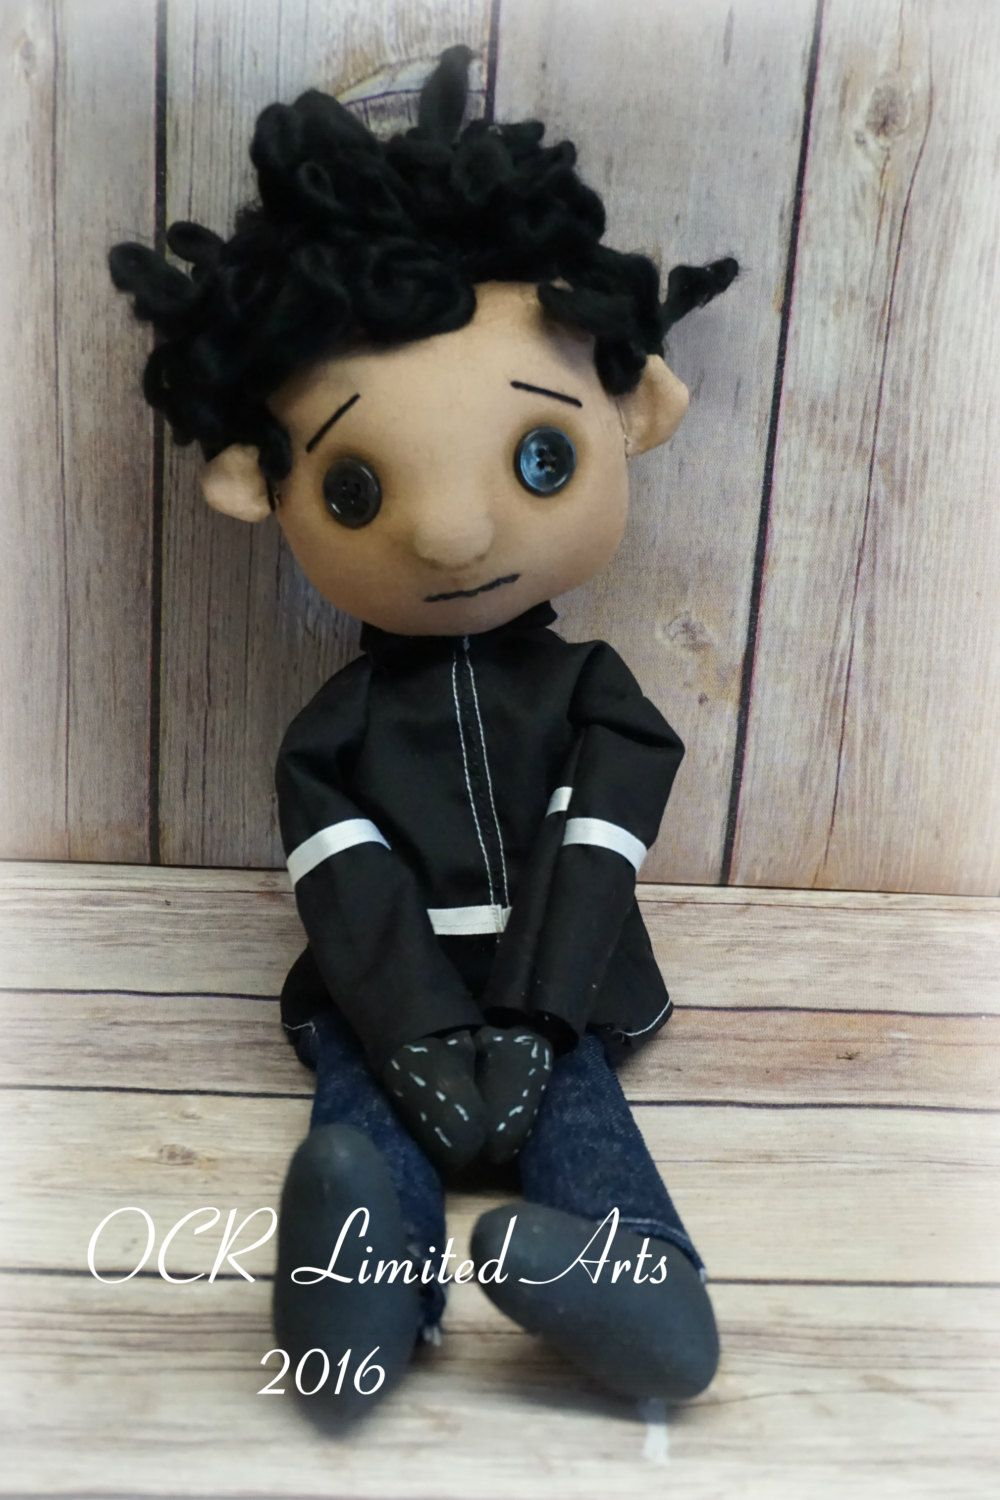 Wybie Lovat Button Eye Doll Coraline Inspired Creepy Cute Art Dolls Cloth Art Dolls Handmade Ornamental Dolls